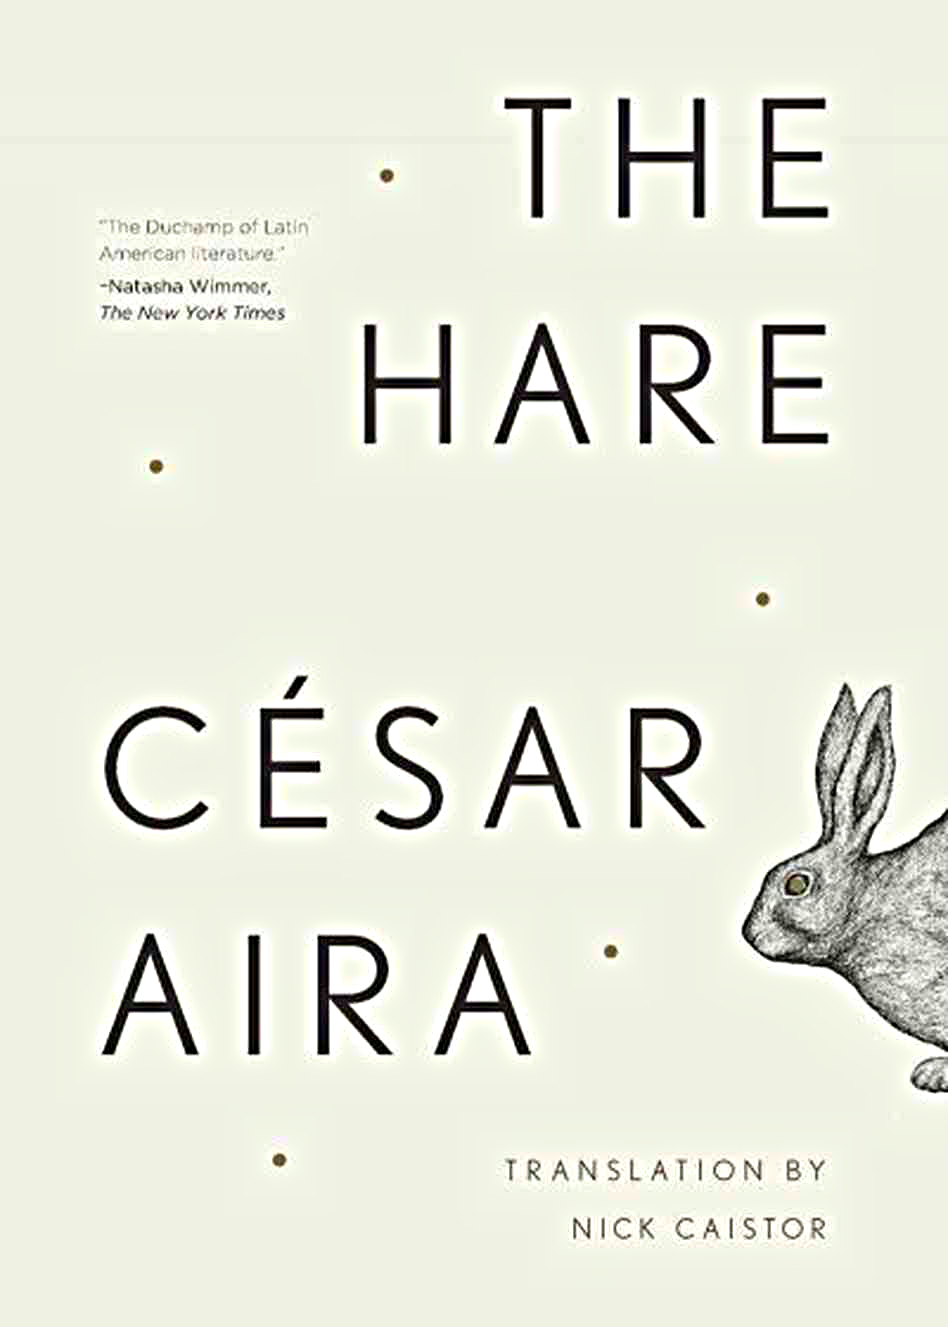 Photo: 'The Hare' Book Cover